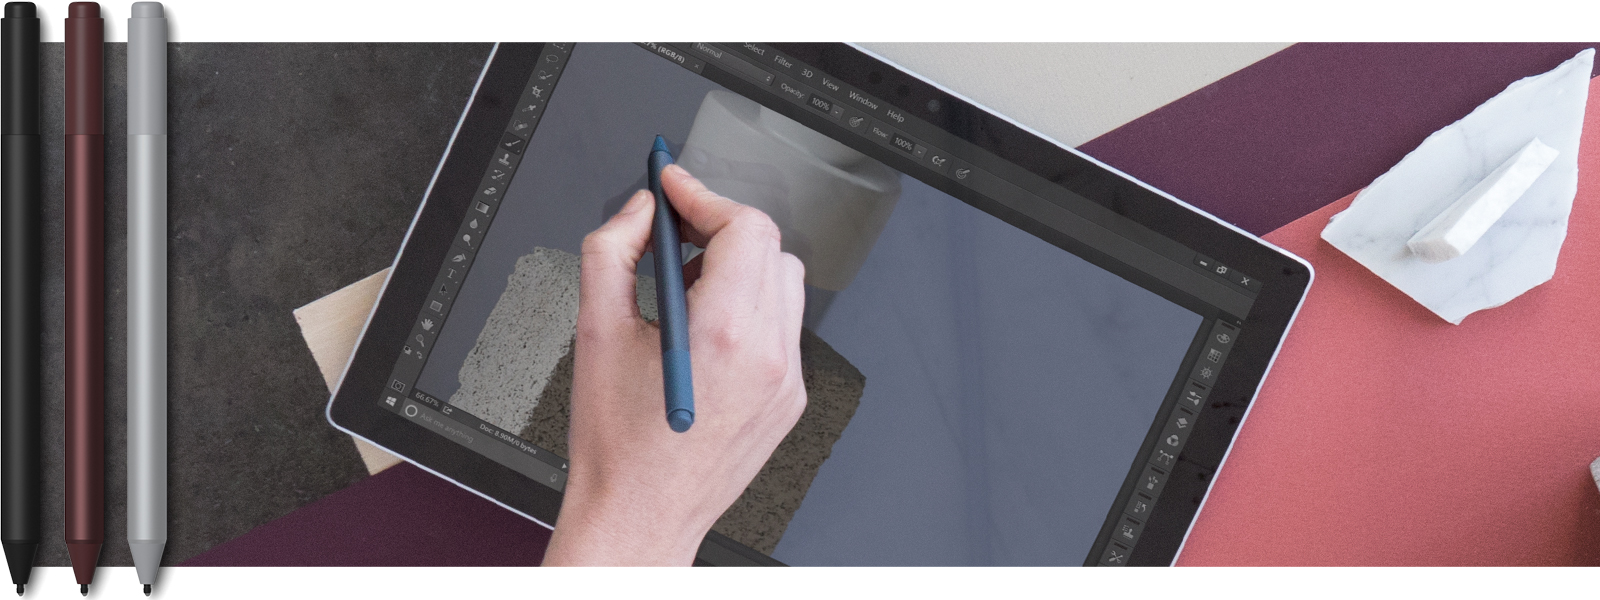 PERSON USING SURFACE AS TABLET WITH PEN AND TOUCH. THREE SURFACE PEN DEVICES IN DIFFERENT COLORS OVERLAY THE IMAGE.